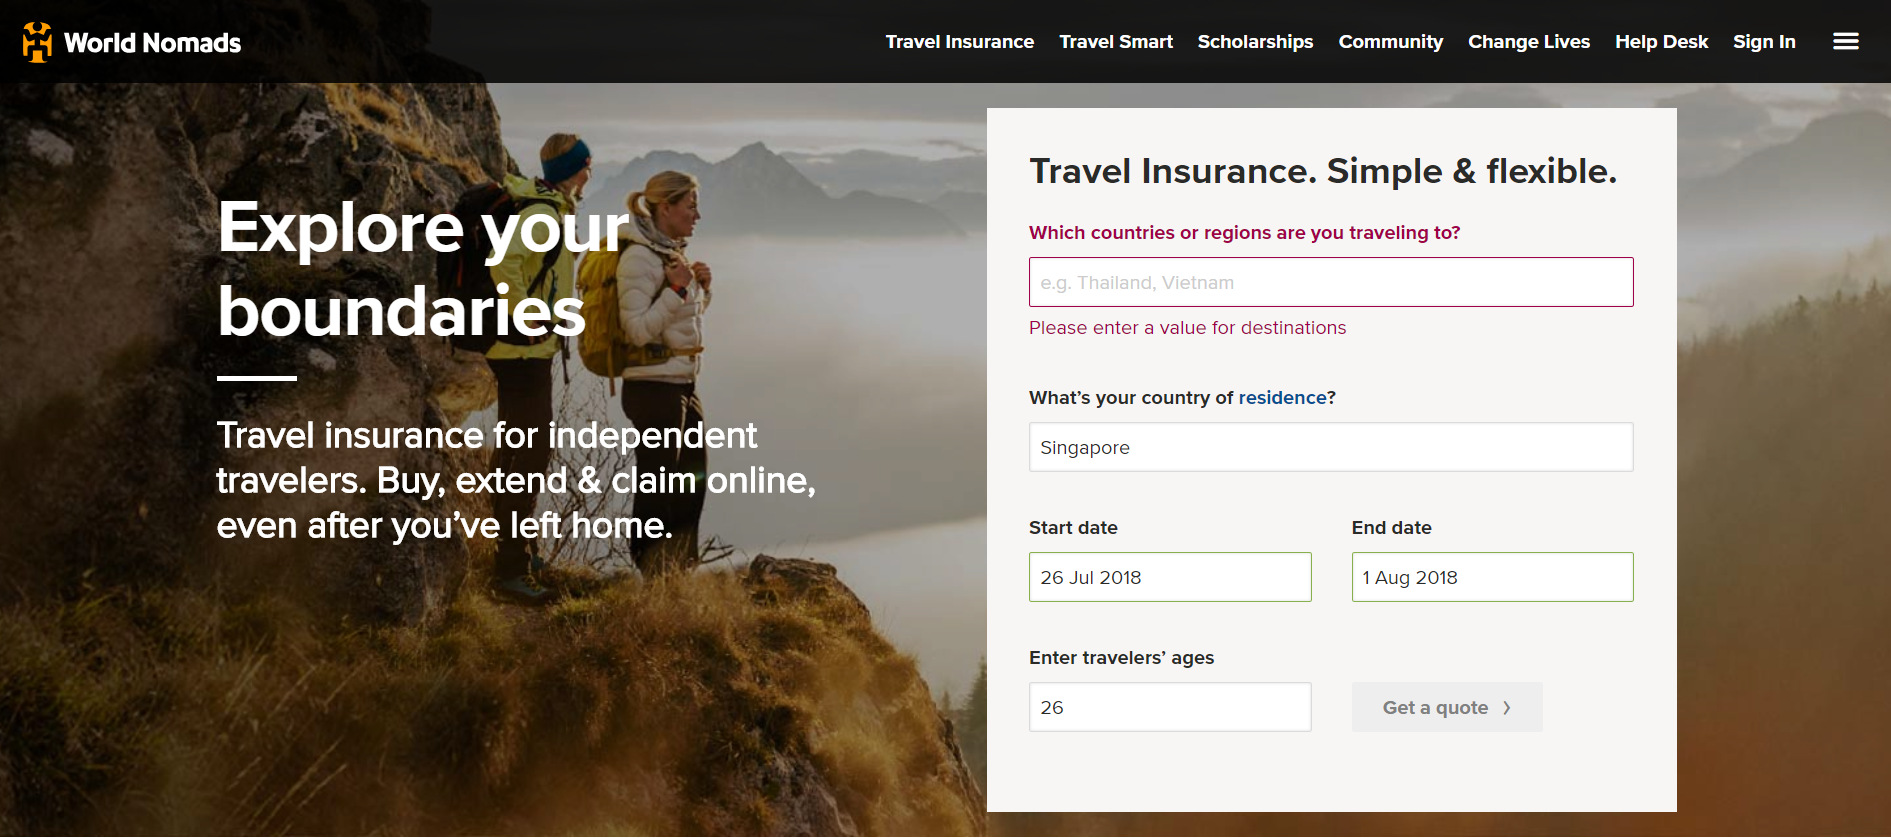 digital nomad traveller singapore fintech app world nomads